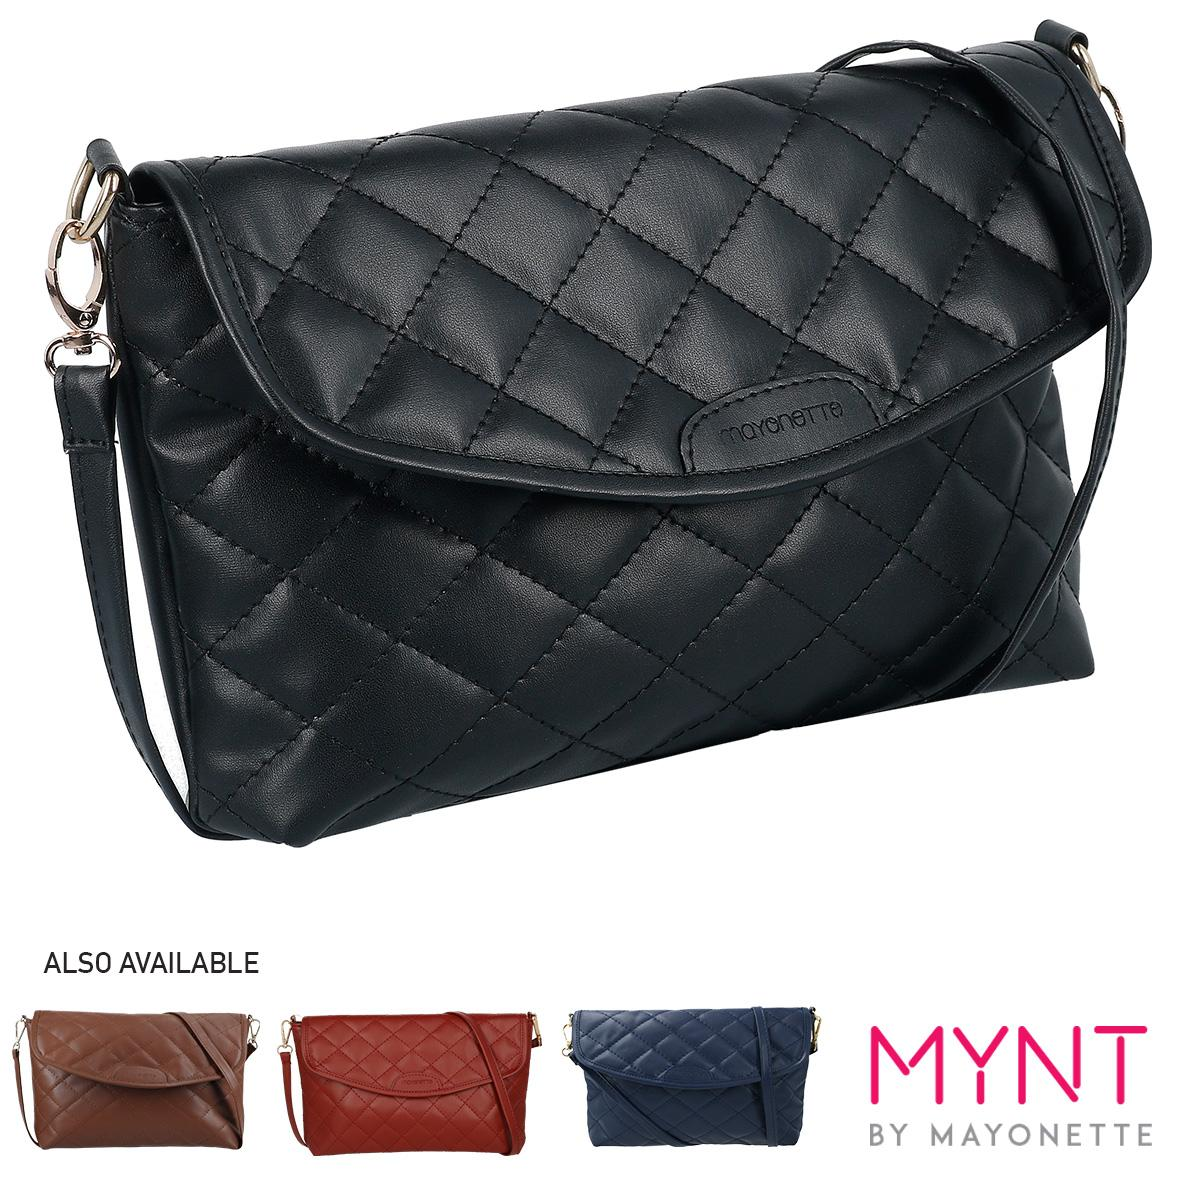 MYNT by Mayonette Tas Selempang Wanita Korean Style Best Seller Branded Akiko Sling